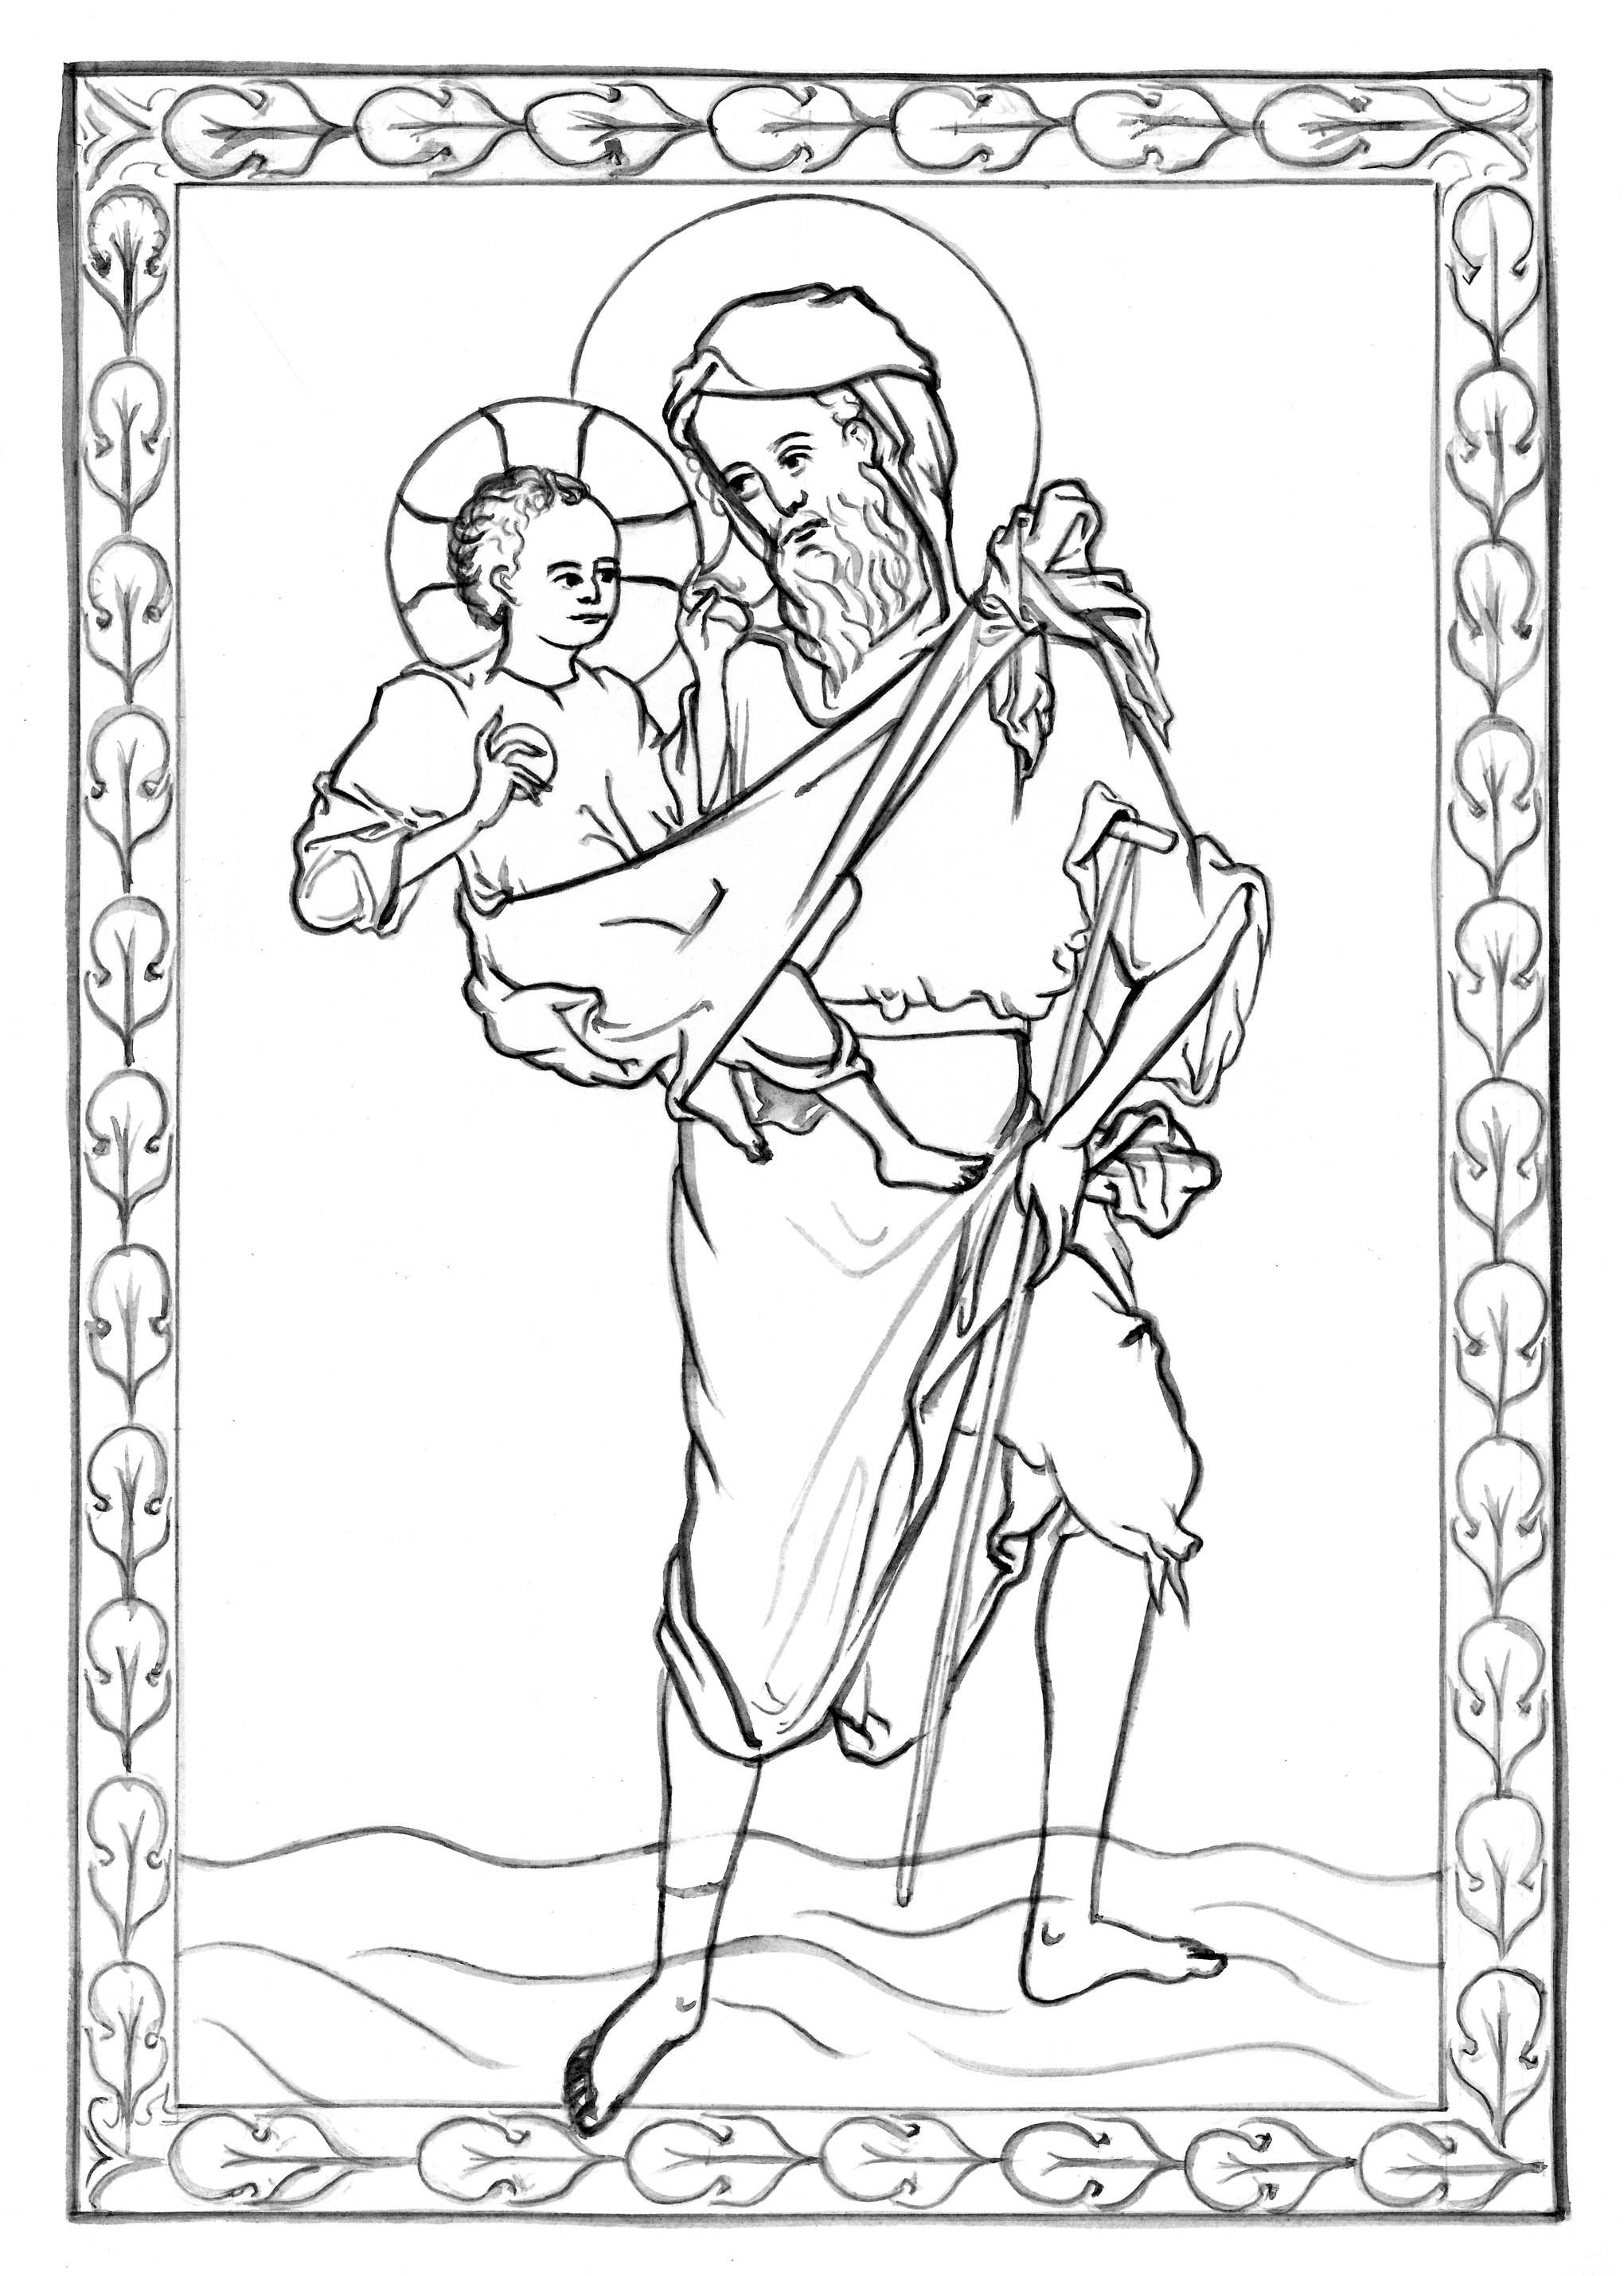 christopher coloring pages - photo#8